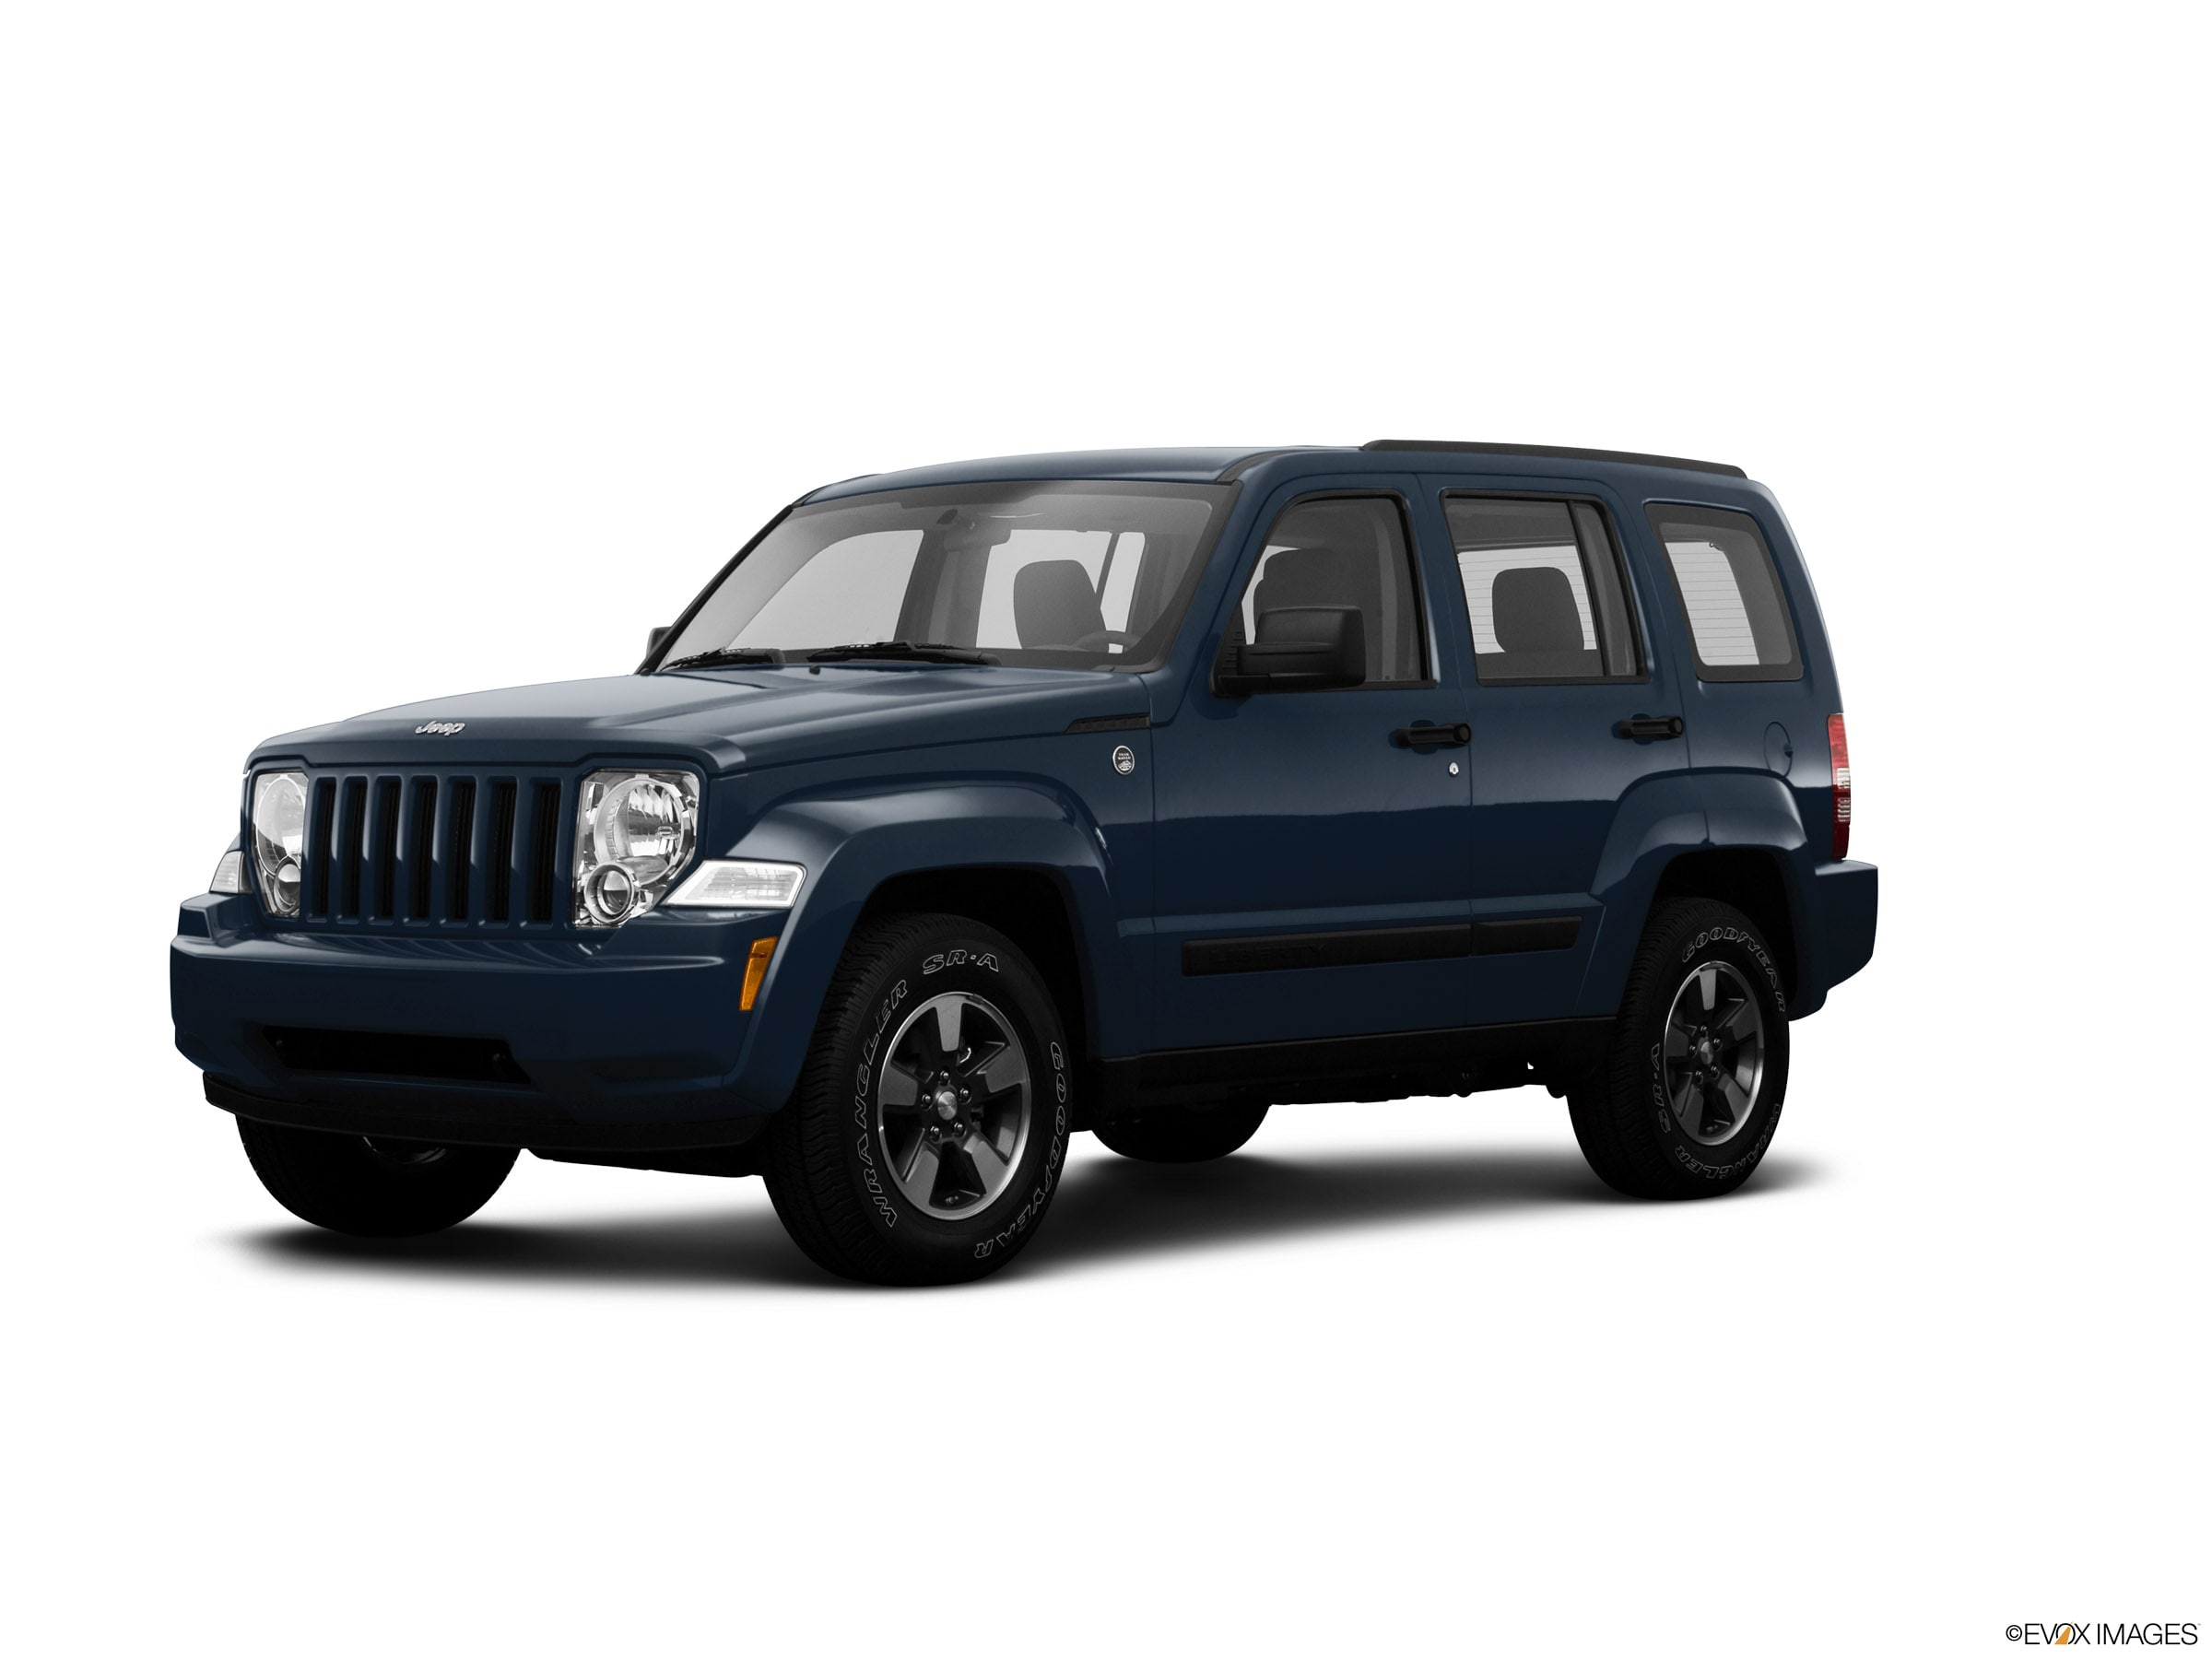 Used 2008 Jeep Liberty For Sale At Dulles Motorcars Vin 1j8gp28k18w195135